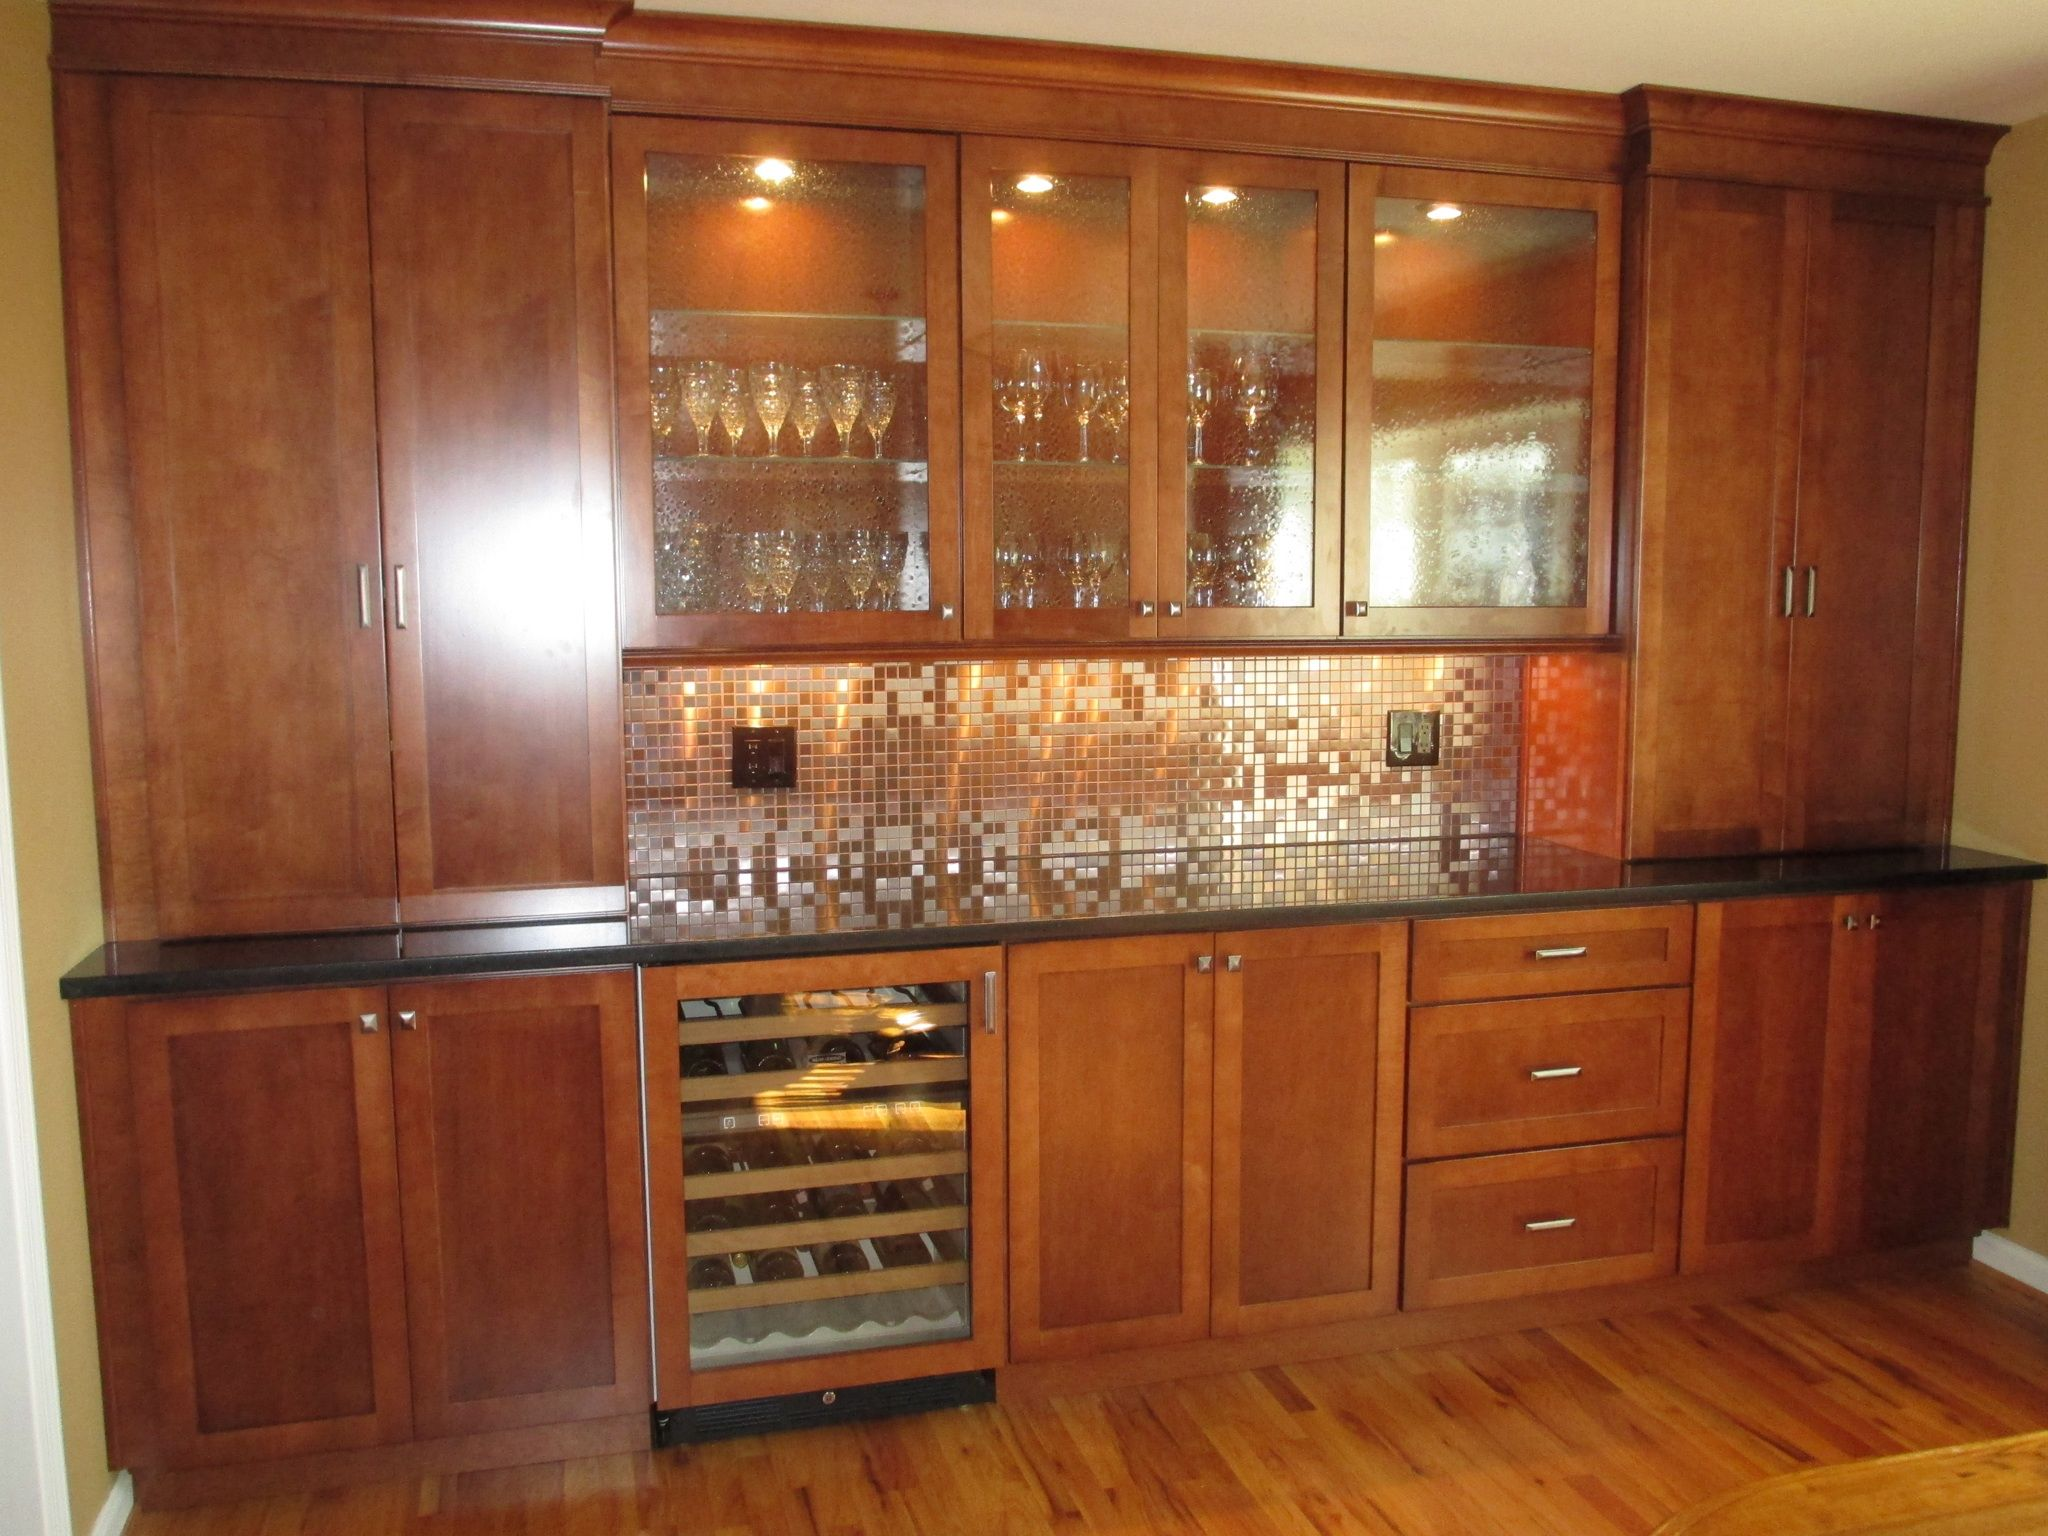 Built in Dining Room Cabinets. Our cabinets are Kraftmaid ...